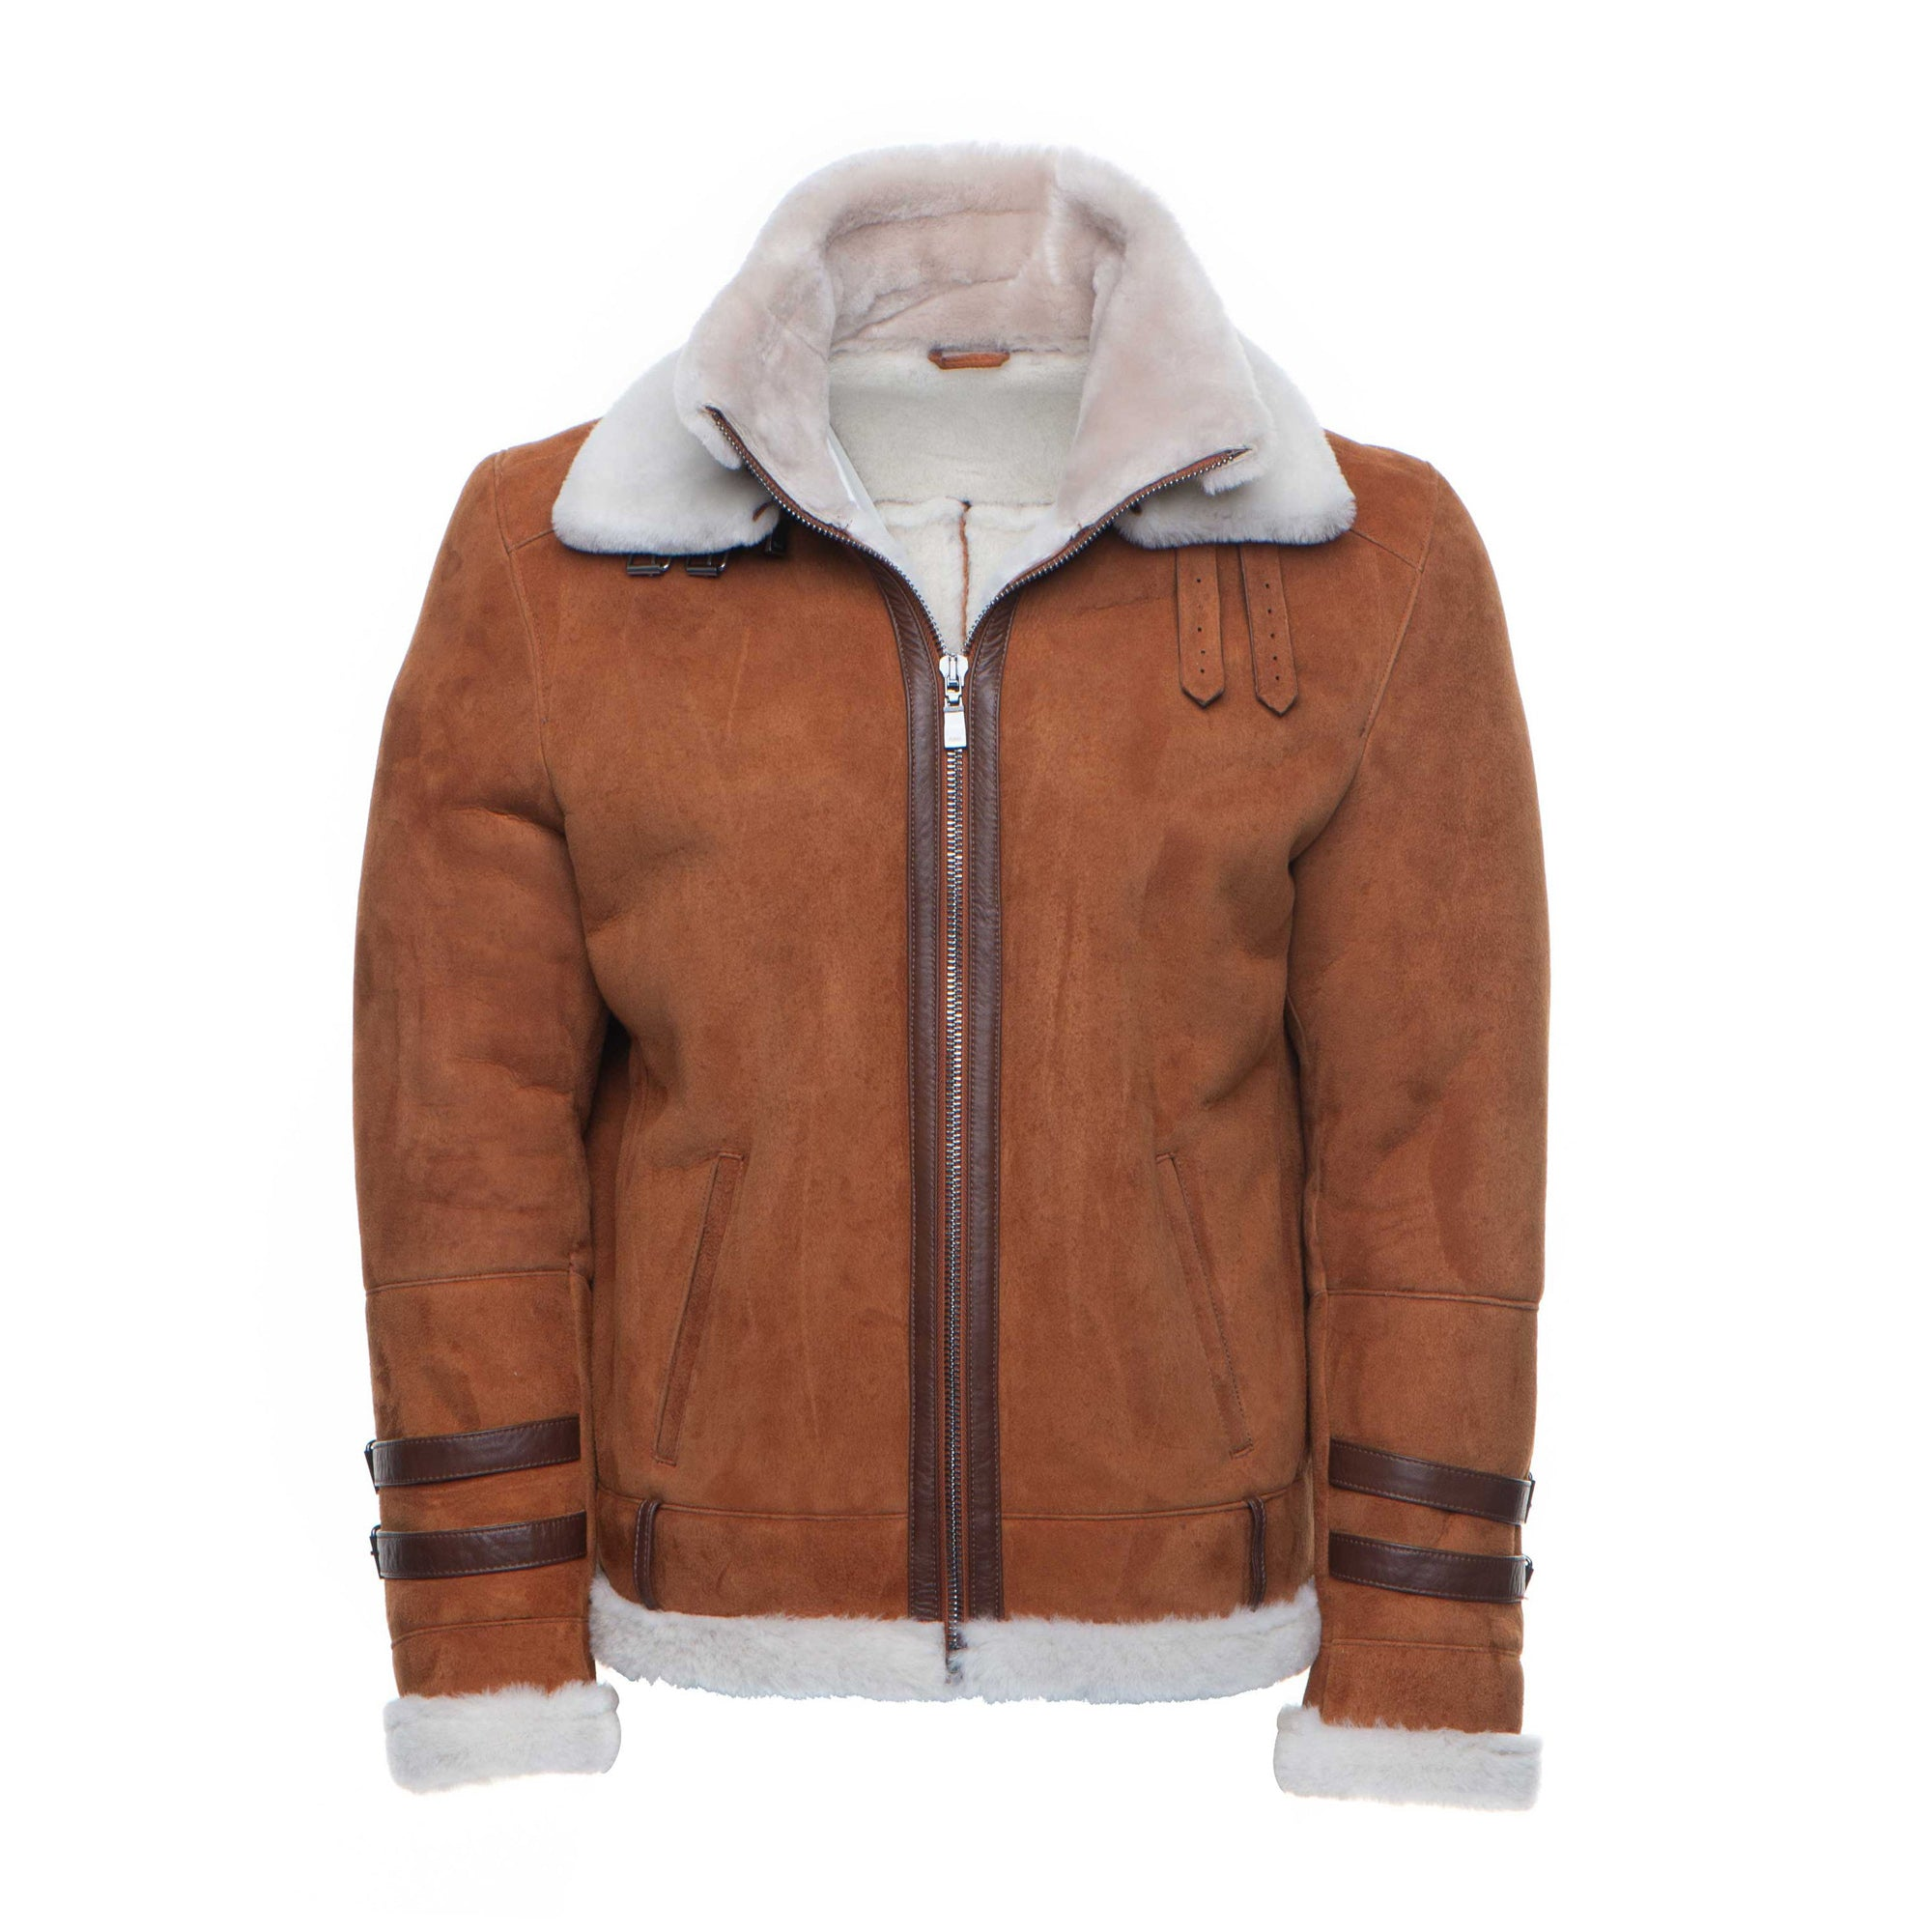 Hagan's Tan Aviator bomber Suede shearling jacket